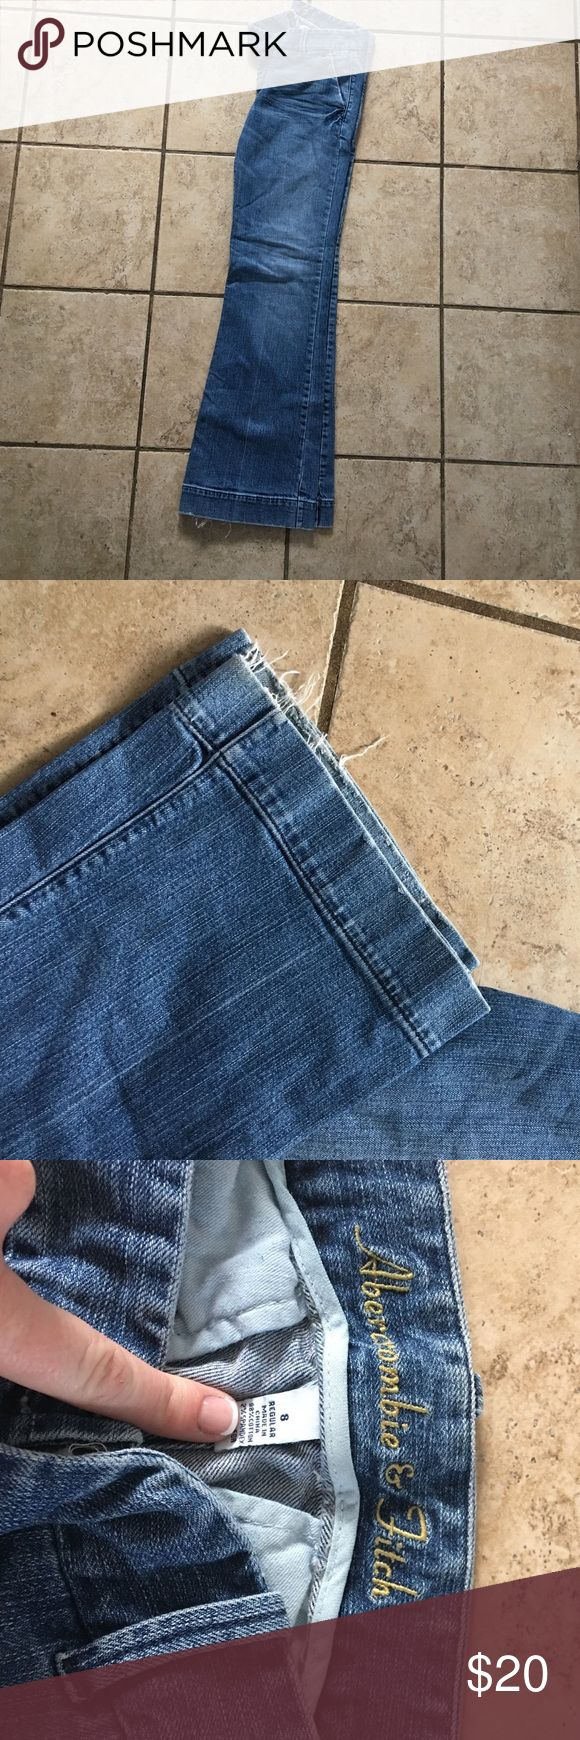 Abercrombie & Fitch trouser style jeans. Super cute Abercrombie & Fitch trouser style jeans with light fraying (see pic) in good used condition. Abercrombie & Fitch Jeans Flare & Wide Leg